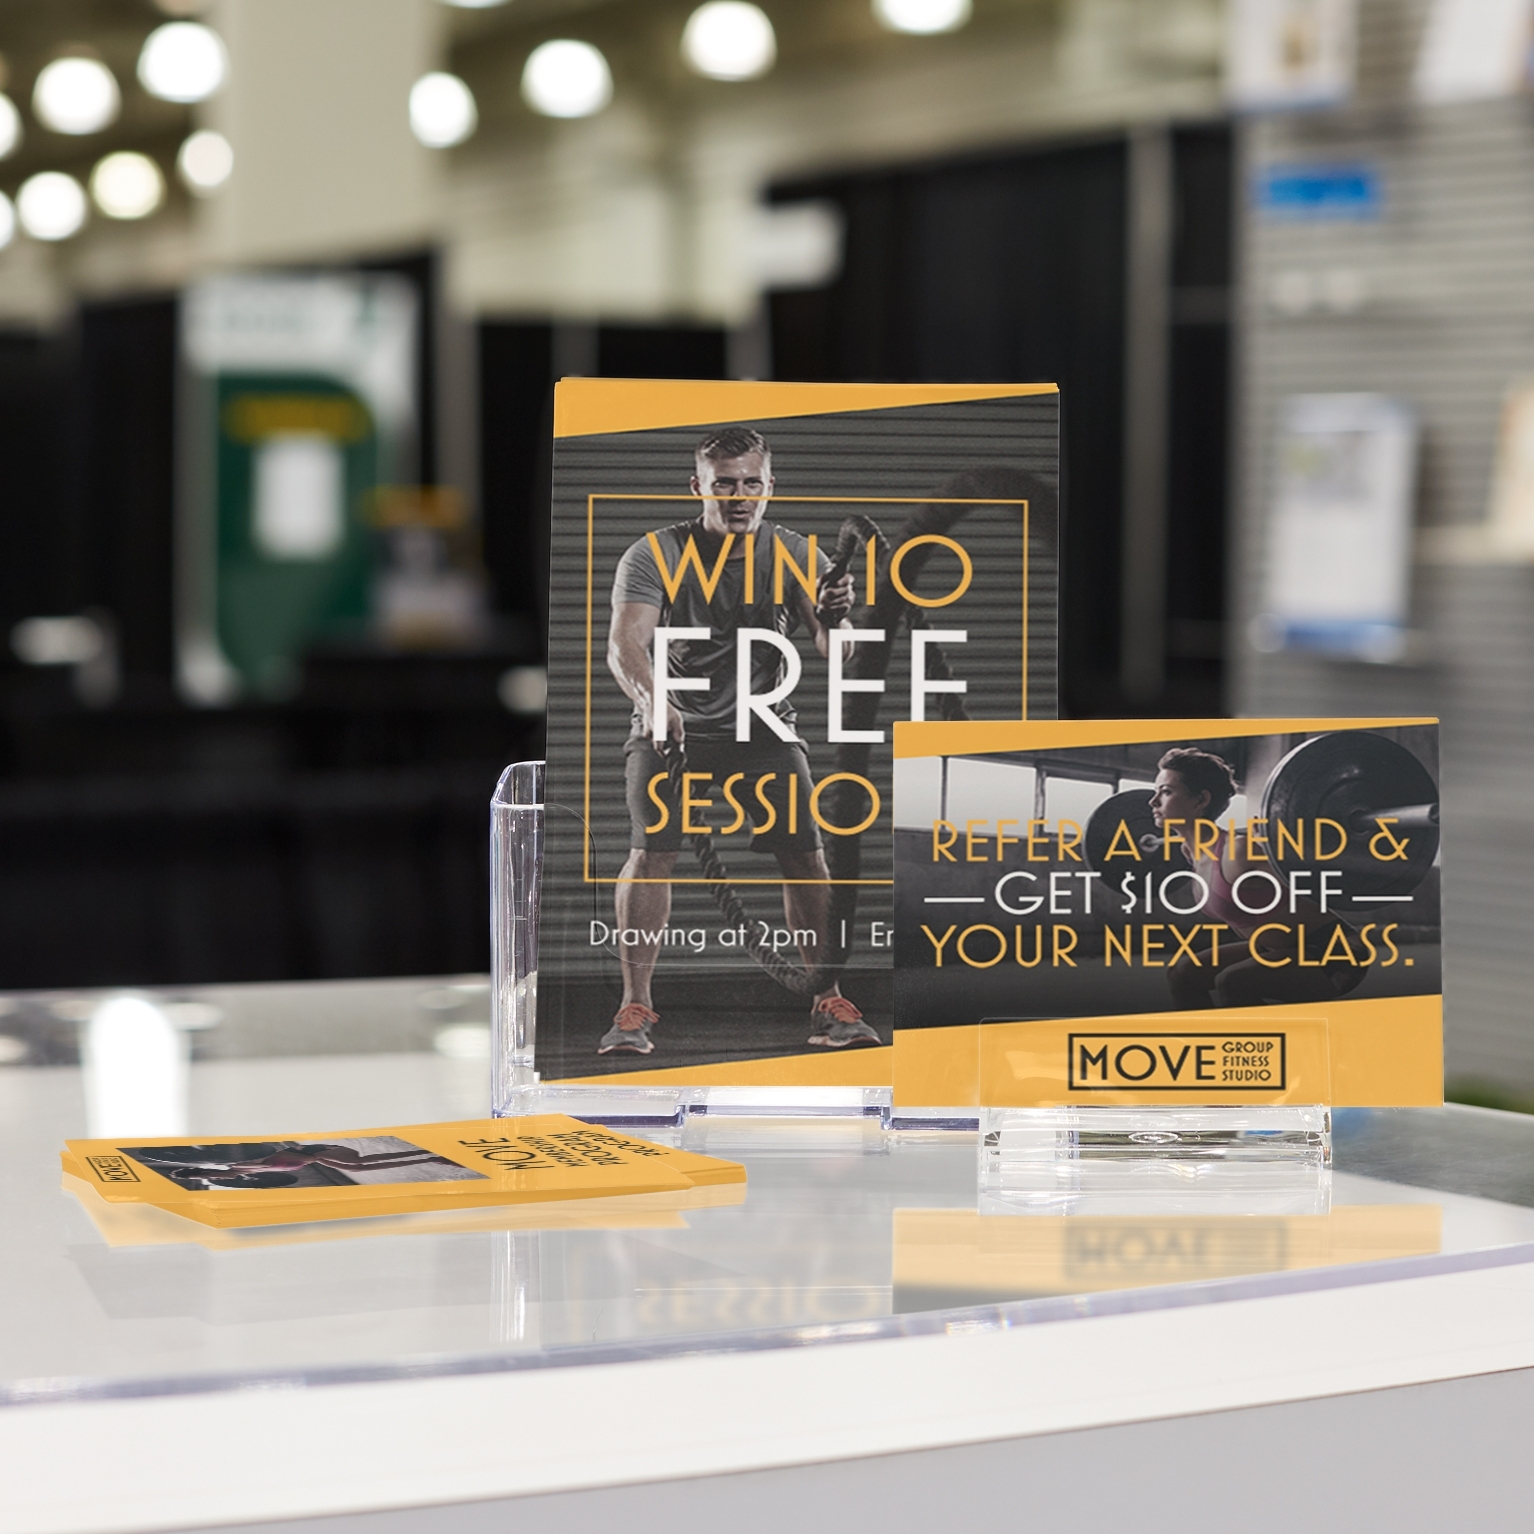 Trade Show Booth Must-Haves | Vistaprint regarding Acrylic Wall Displays Fitness Schedules